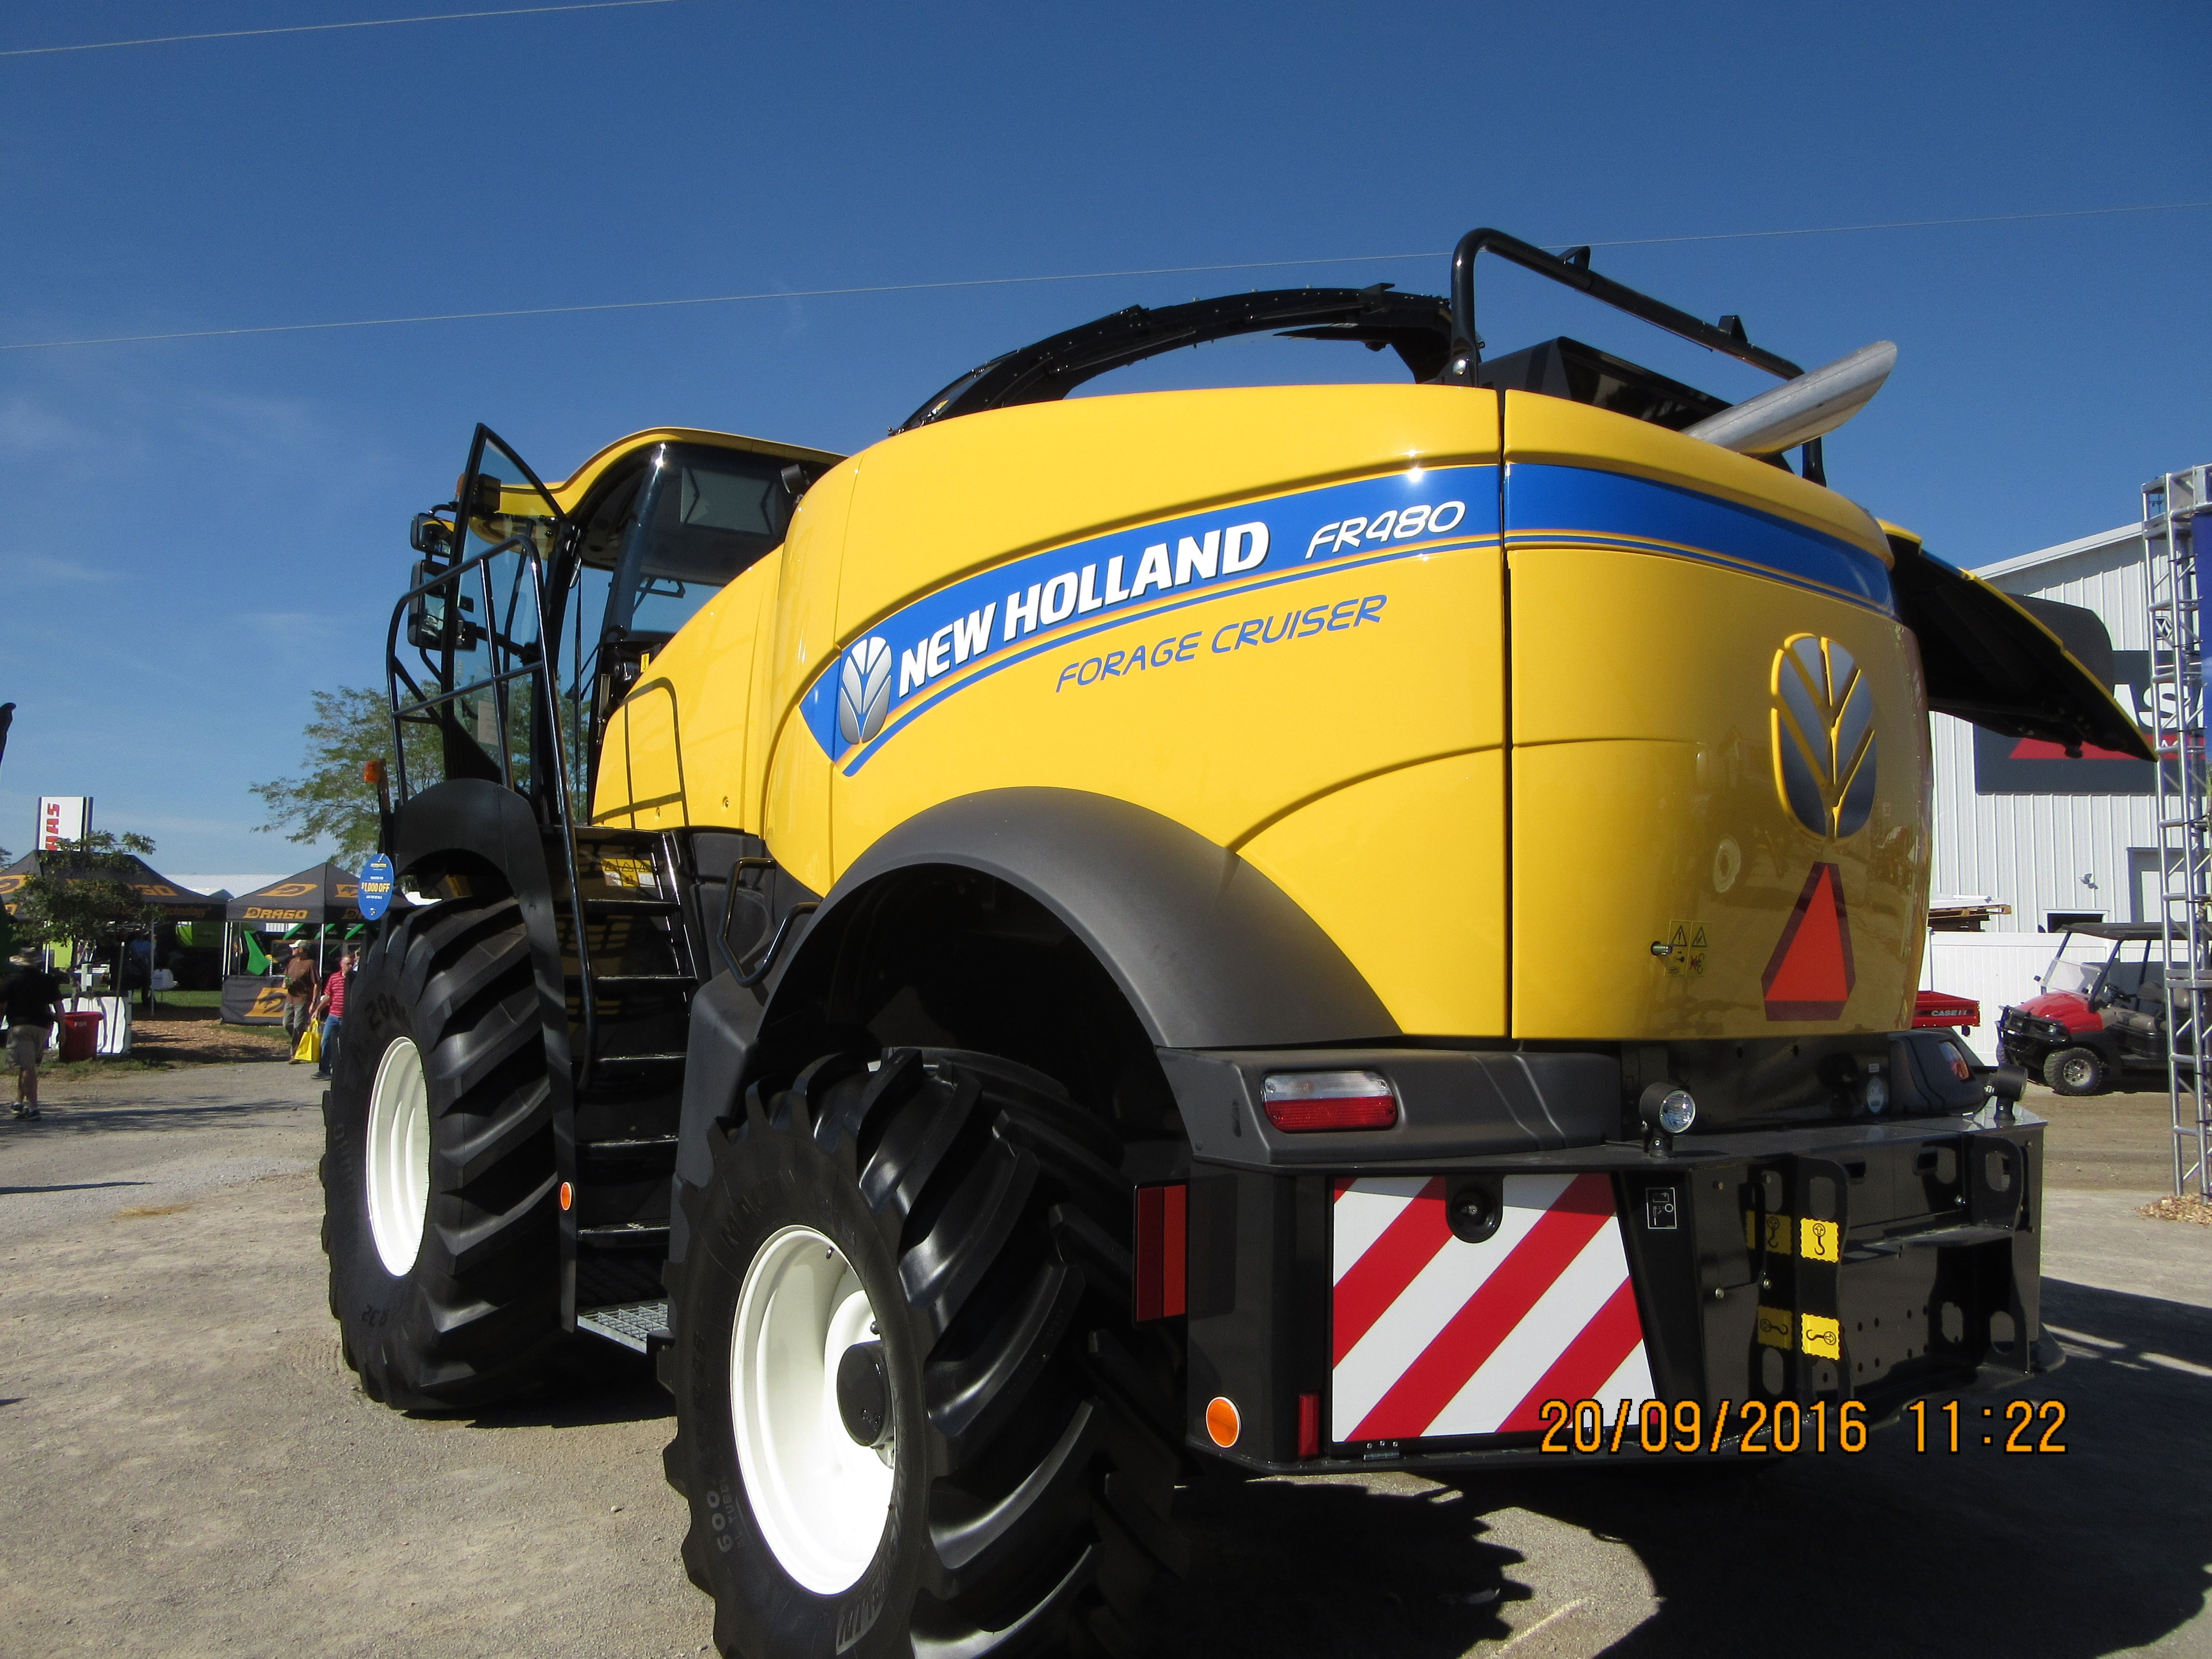 Rear of New Holland ER480 forage cruiser